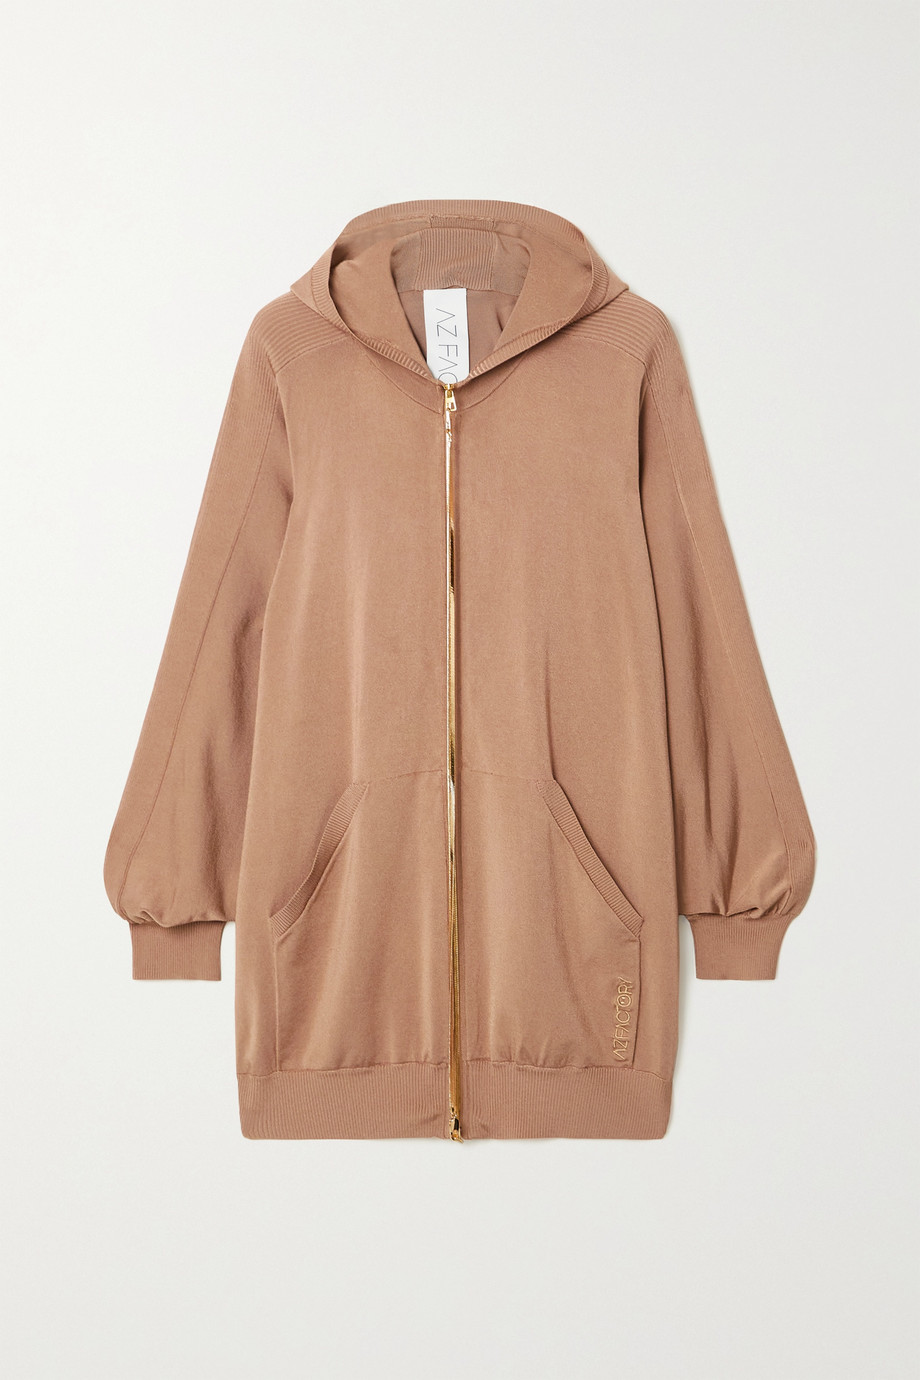 AZ Factory Switchwear oversized stretch-knit hoodie